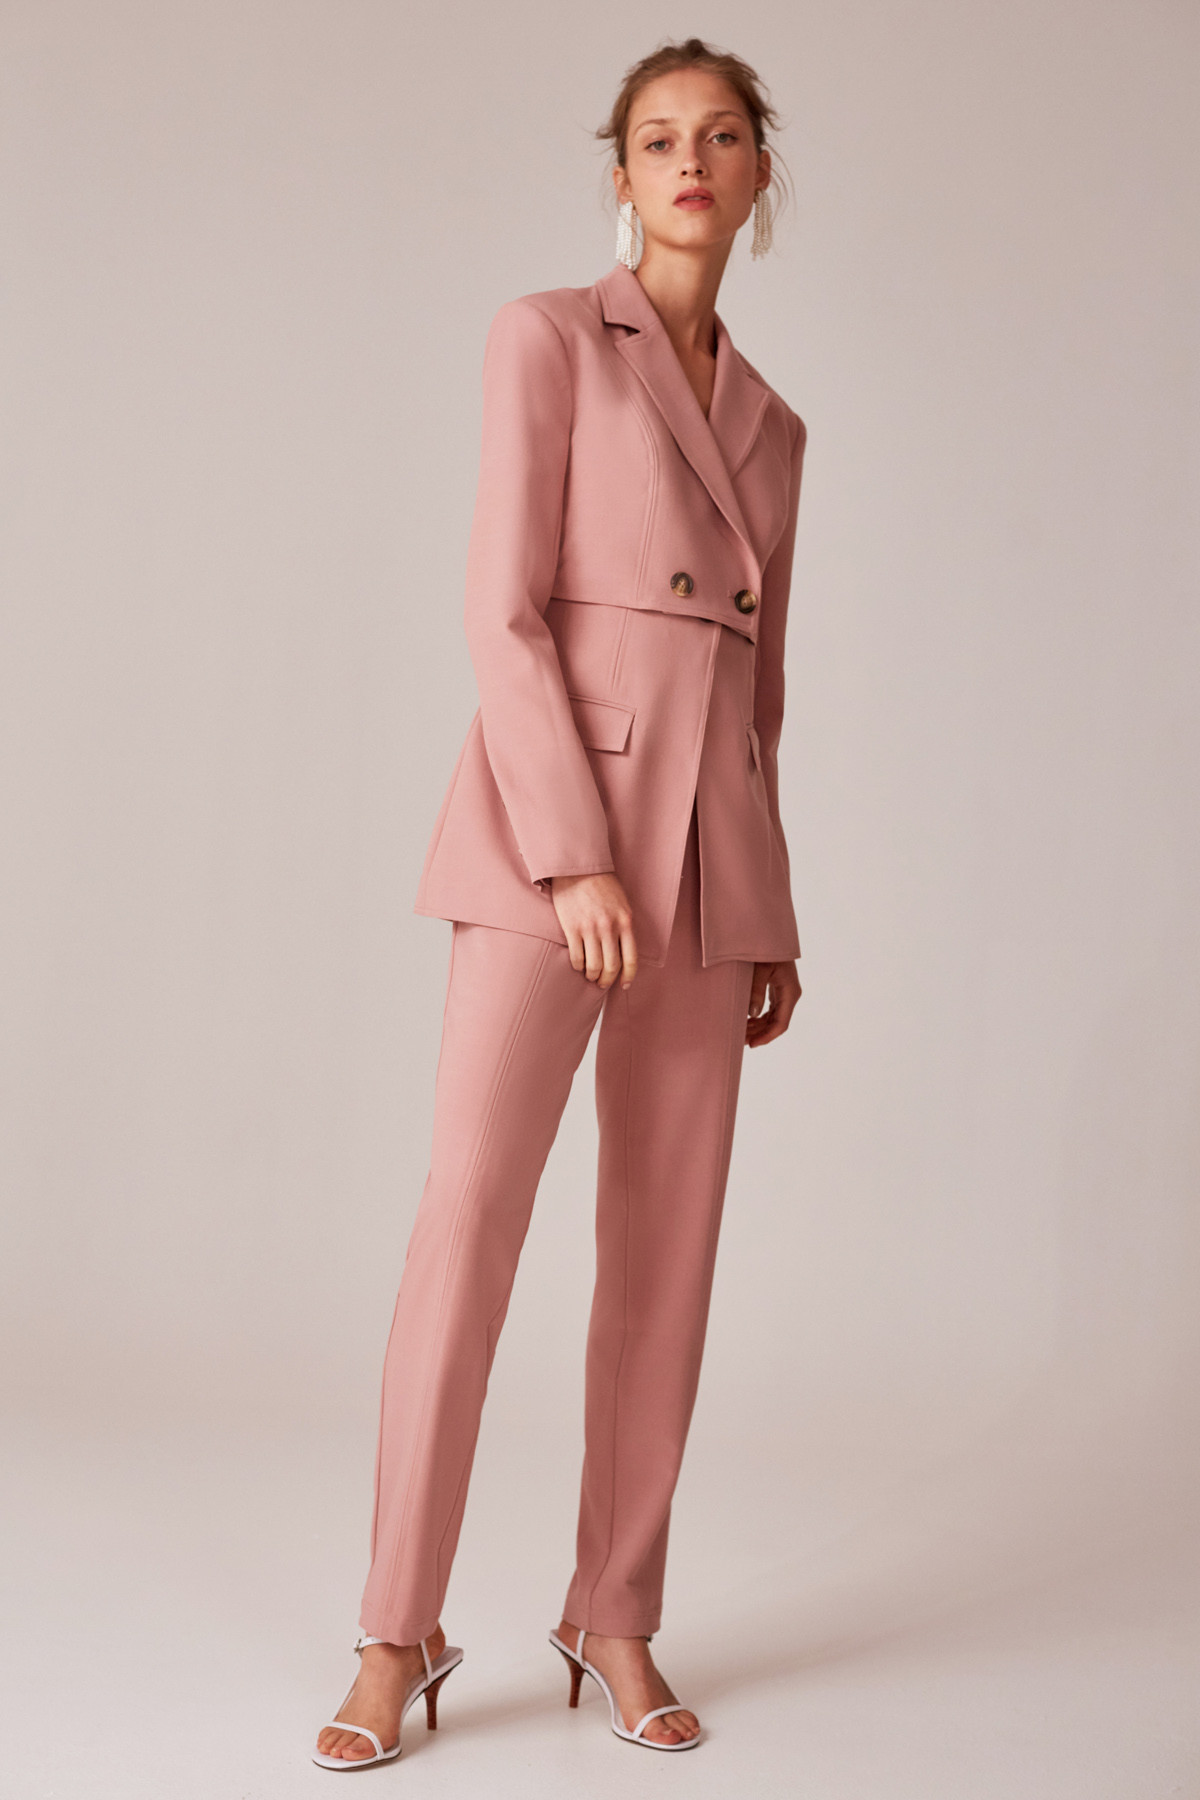 C/MEO Collective // Accepting Blazer + Pant